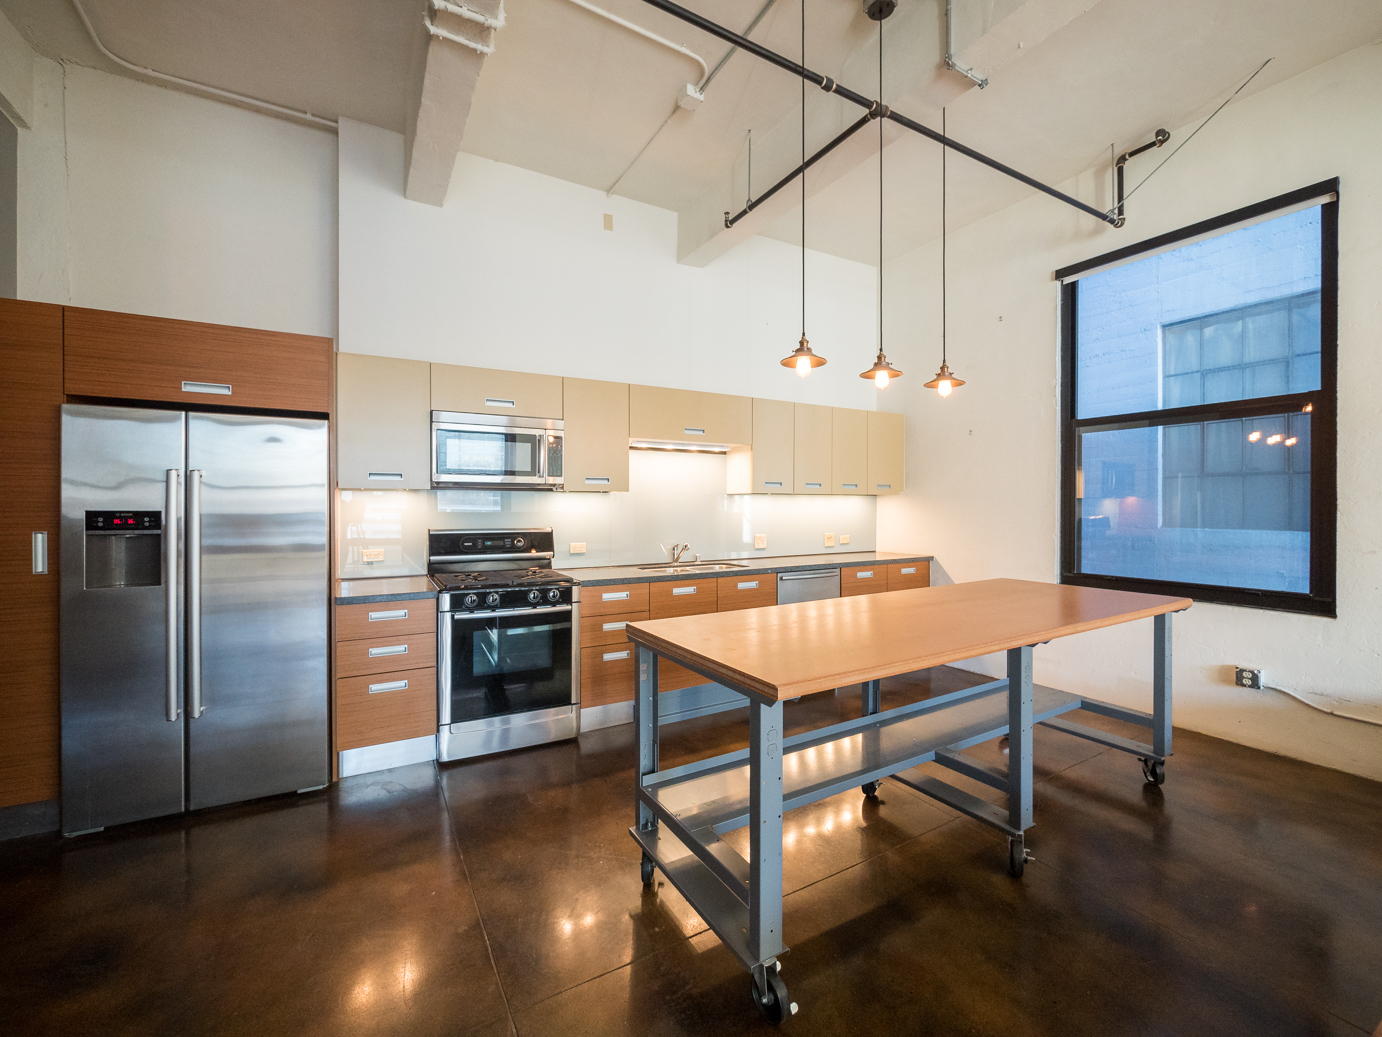 Unique Industrial Loft In DTLA | Incredible Amenities | Nearby Parking Included!